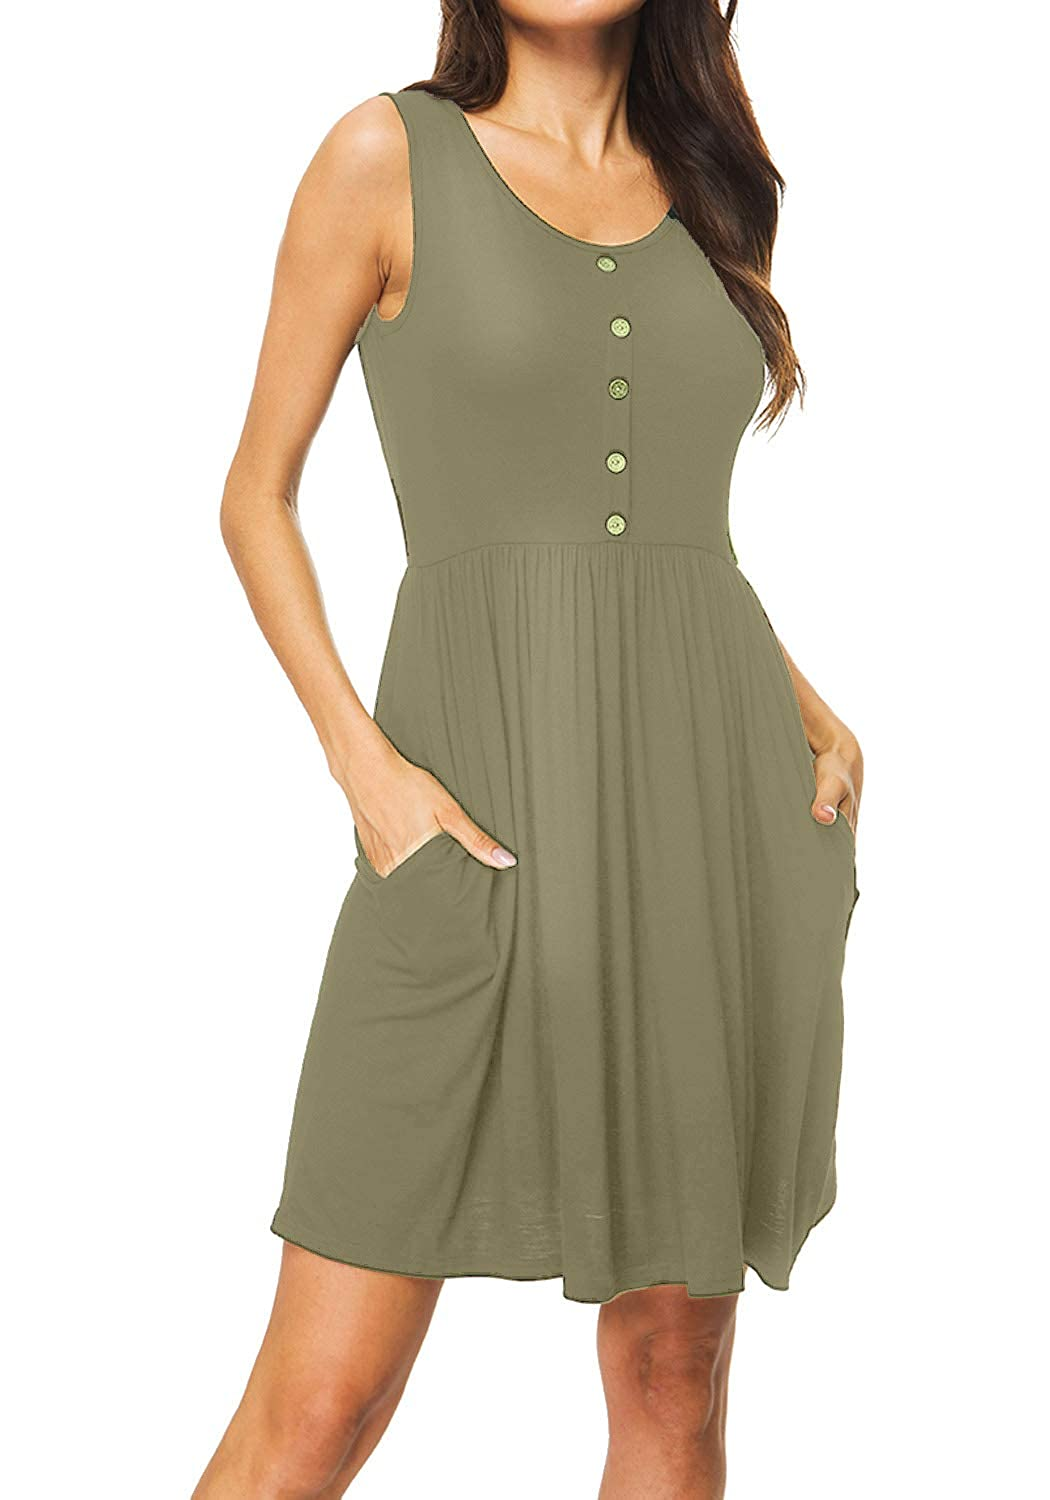 SouqFone Womens Loose Casual Dresses Pleated Swing Dress with Pockets Knee Length